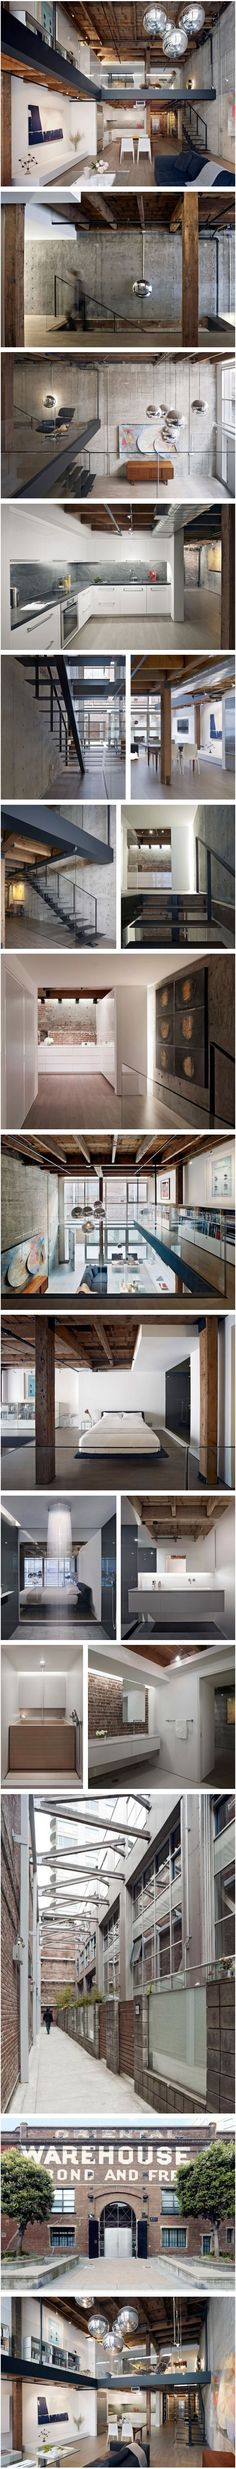 Interior design and architecture for a loft unit in San Francisco's Oriental Warehouse Building by EDMONDS + LEE ARCHITECTS.